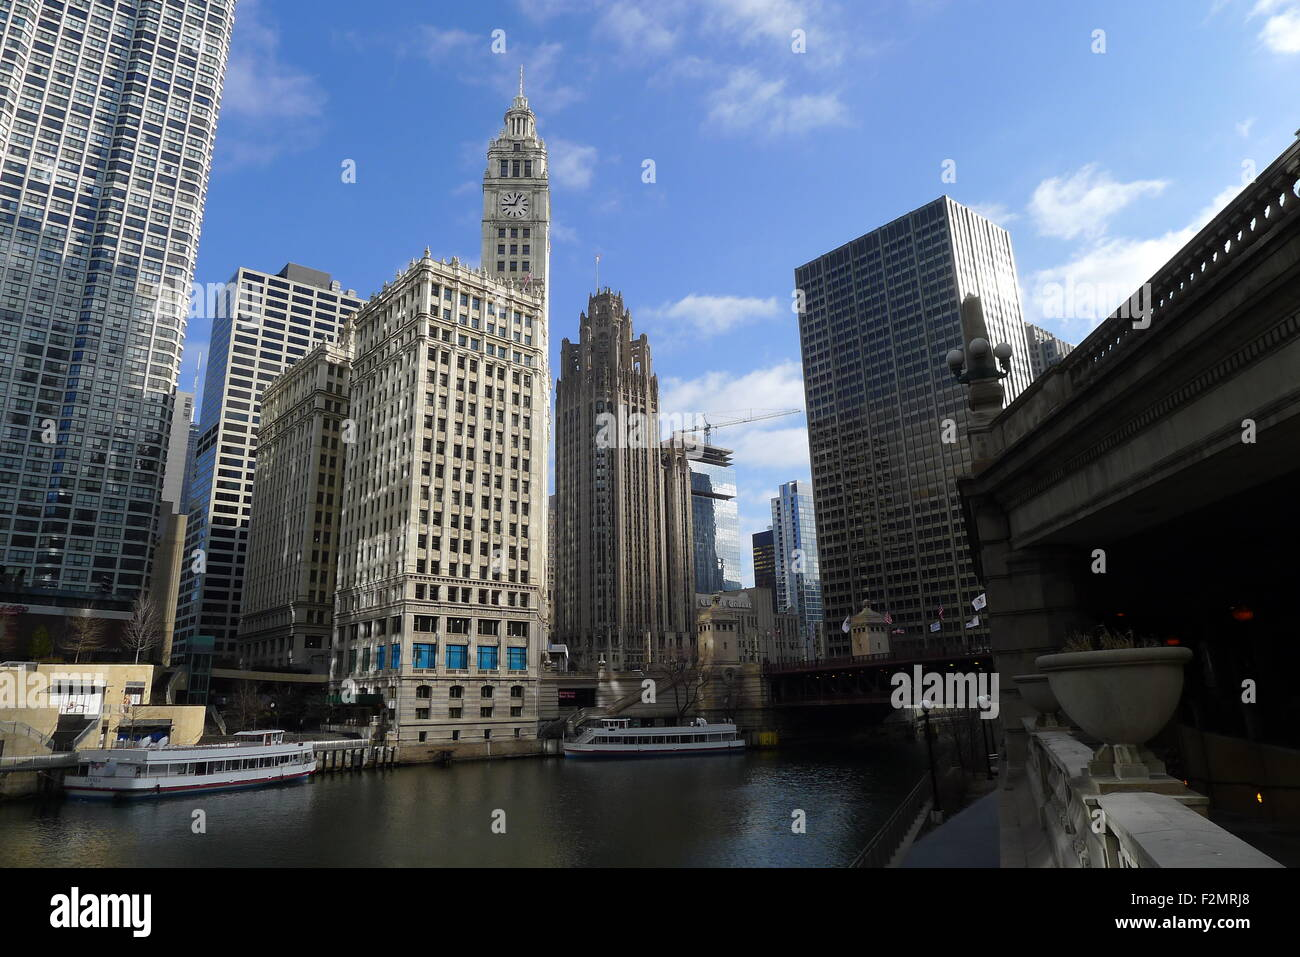 Chicago River, The Wrigley Building, Tribune Tower and Equitable Building - Stock Image